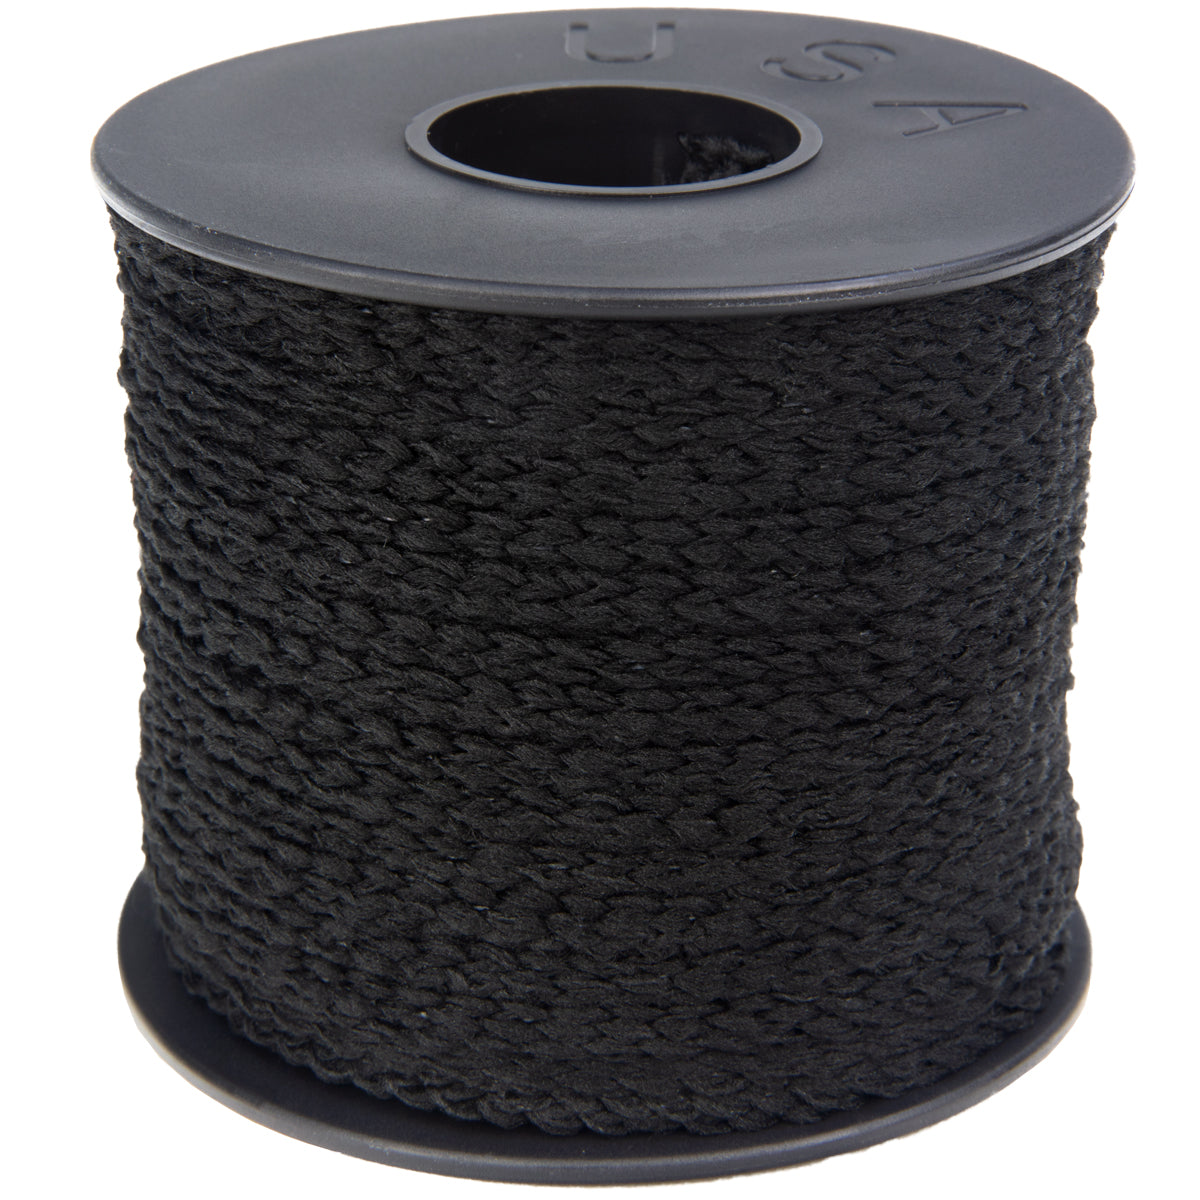 1 4 X 65 Ft Spool Face Mask Elastic Atwood Rope Mfg